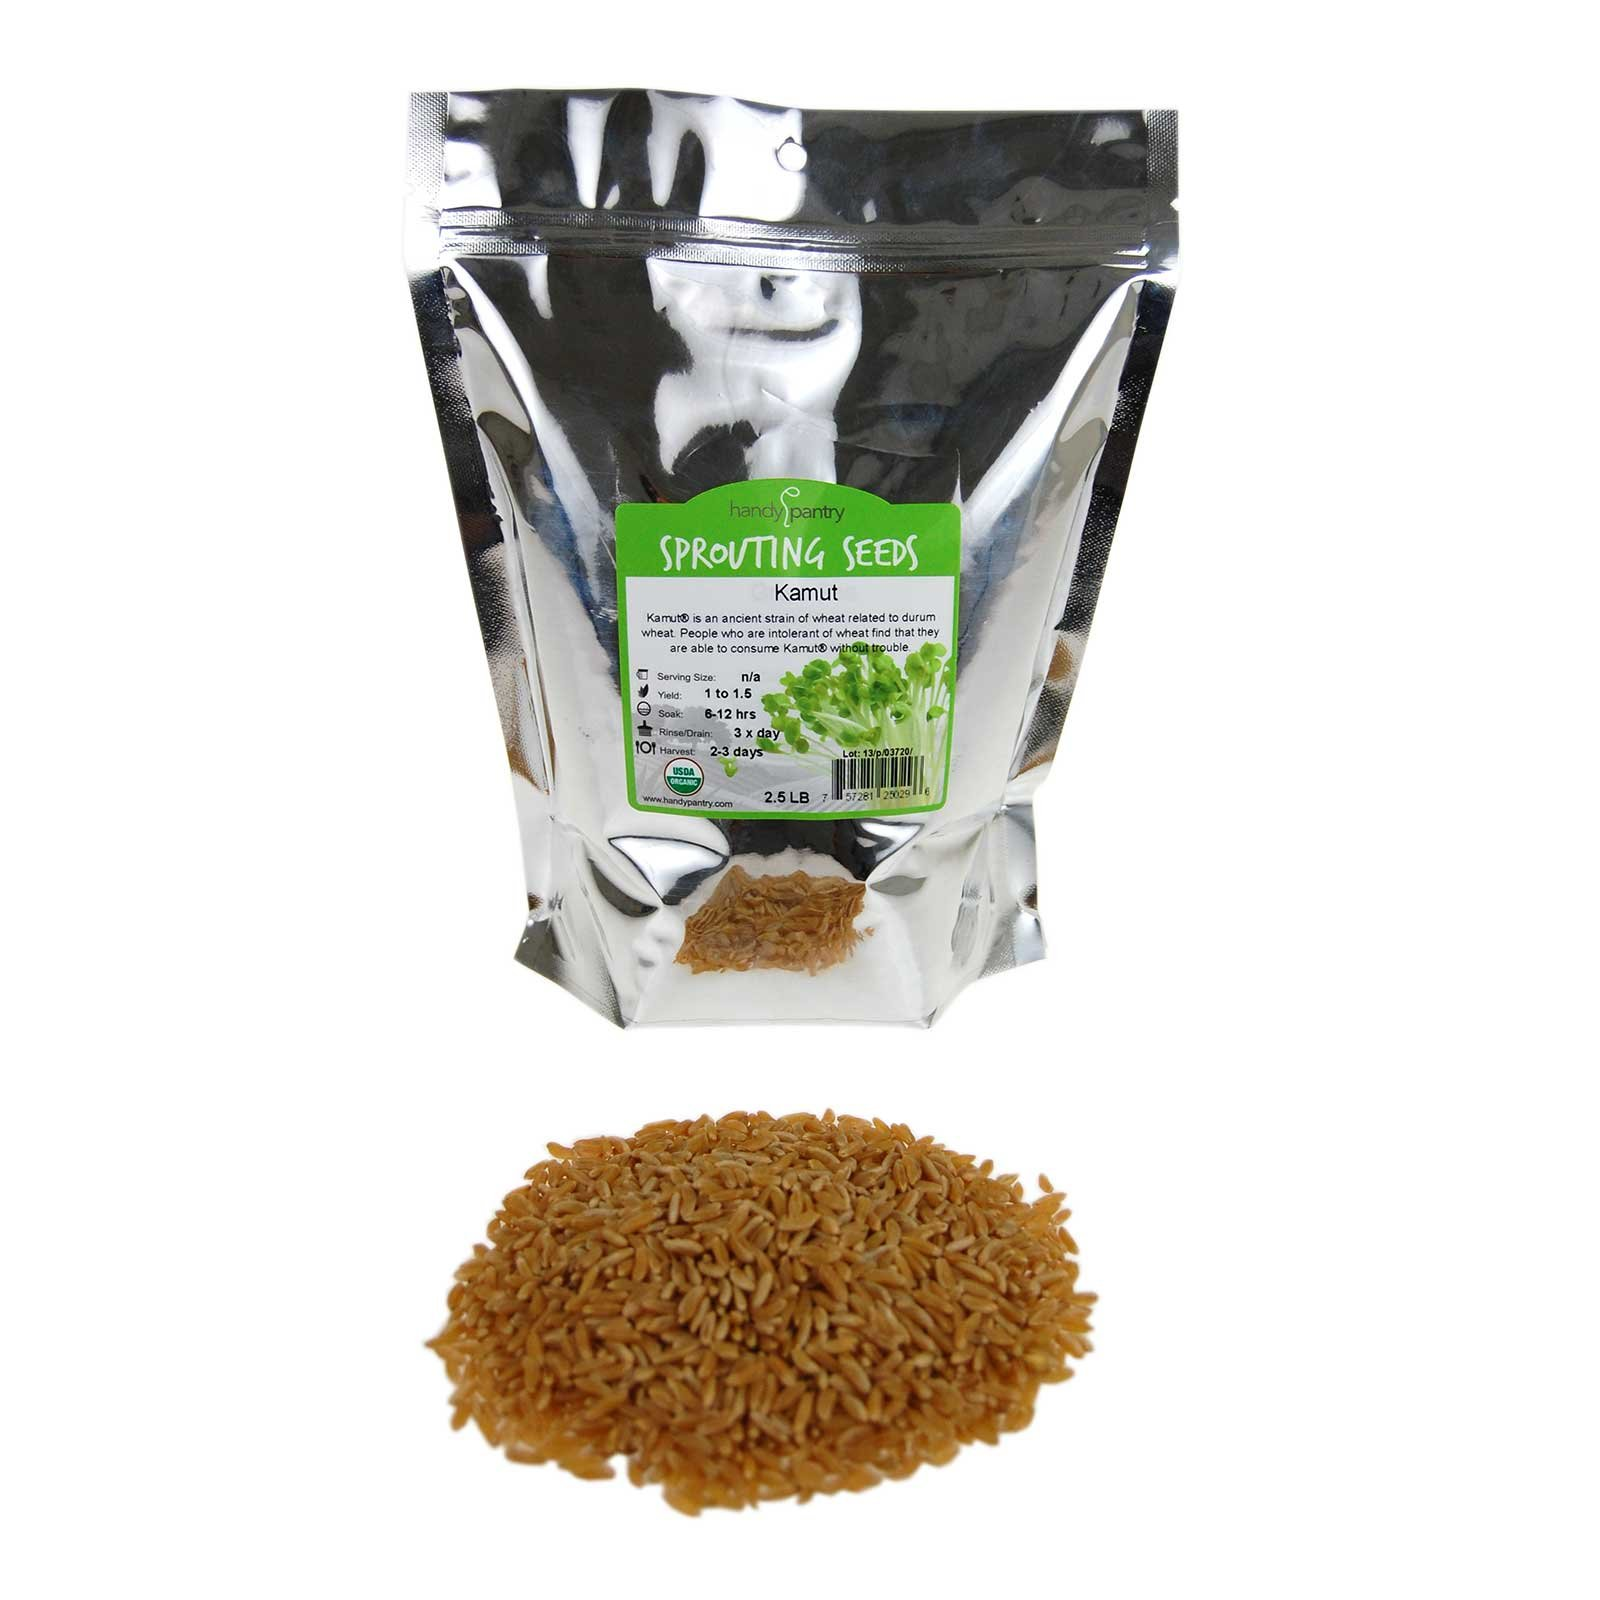 Organic Kamut Seed- 2.5 Lb- Kamut Grain Seeds- For Growing Kamut Grass, Flour, Bread, Baking, Cooking, Food Storage, Sprouting